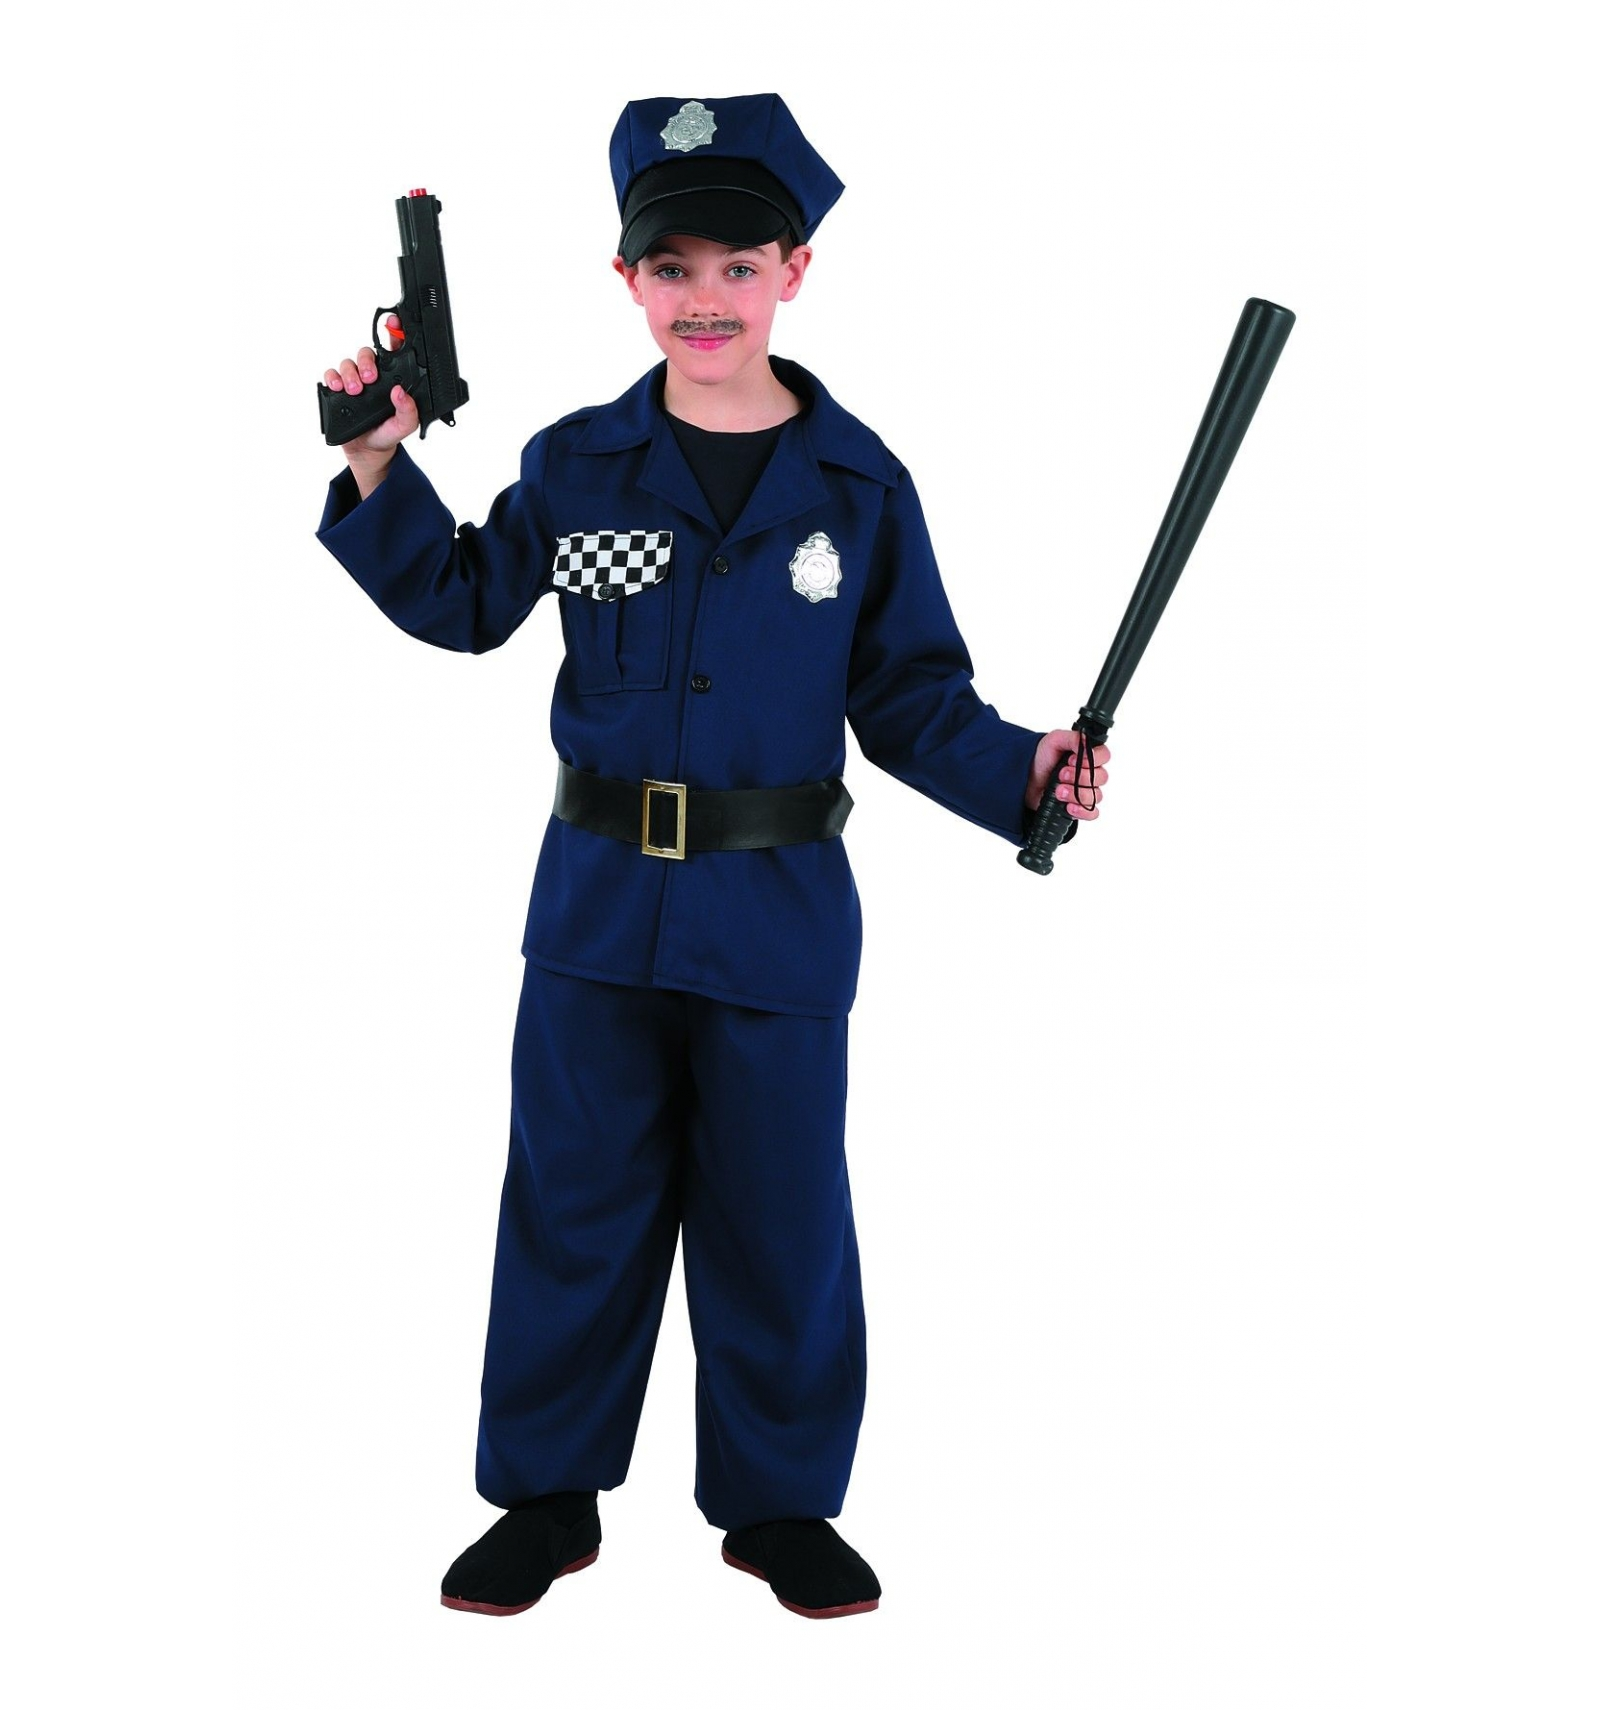 Police officer child costume costume shop shipments in less than 72 hours - Police officer child costume ...